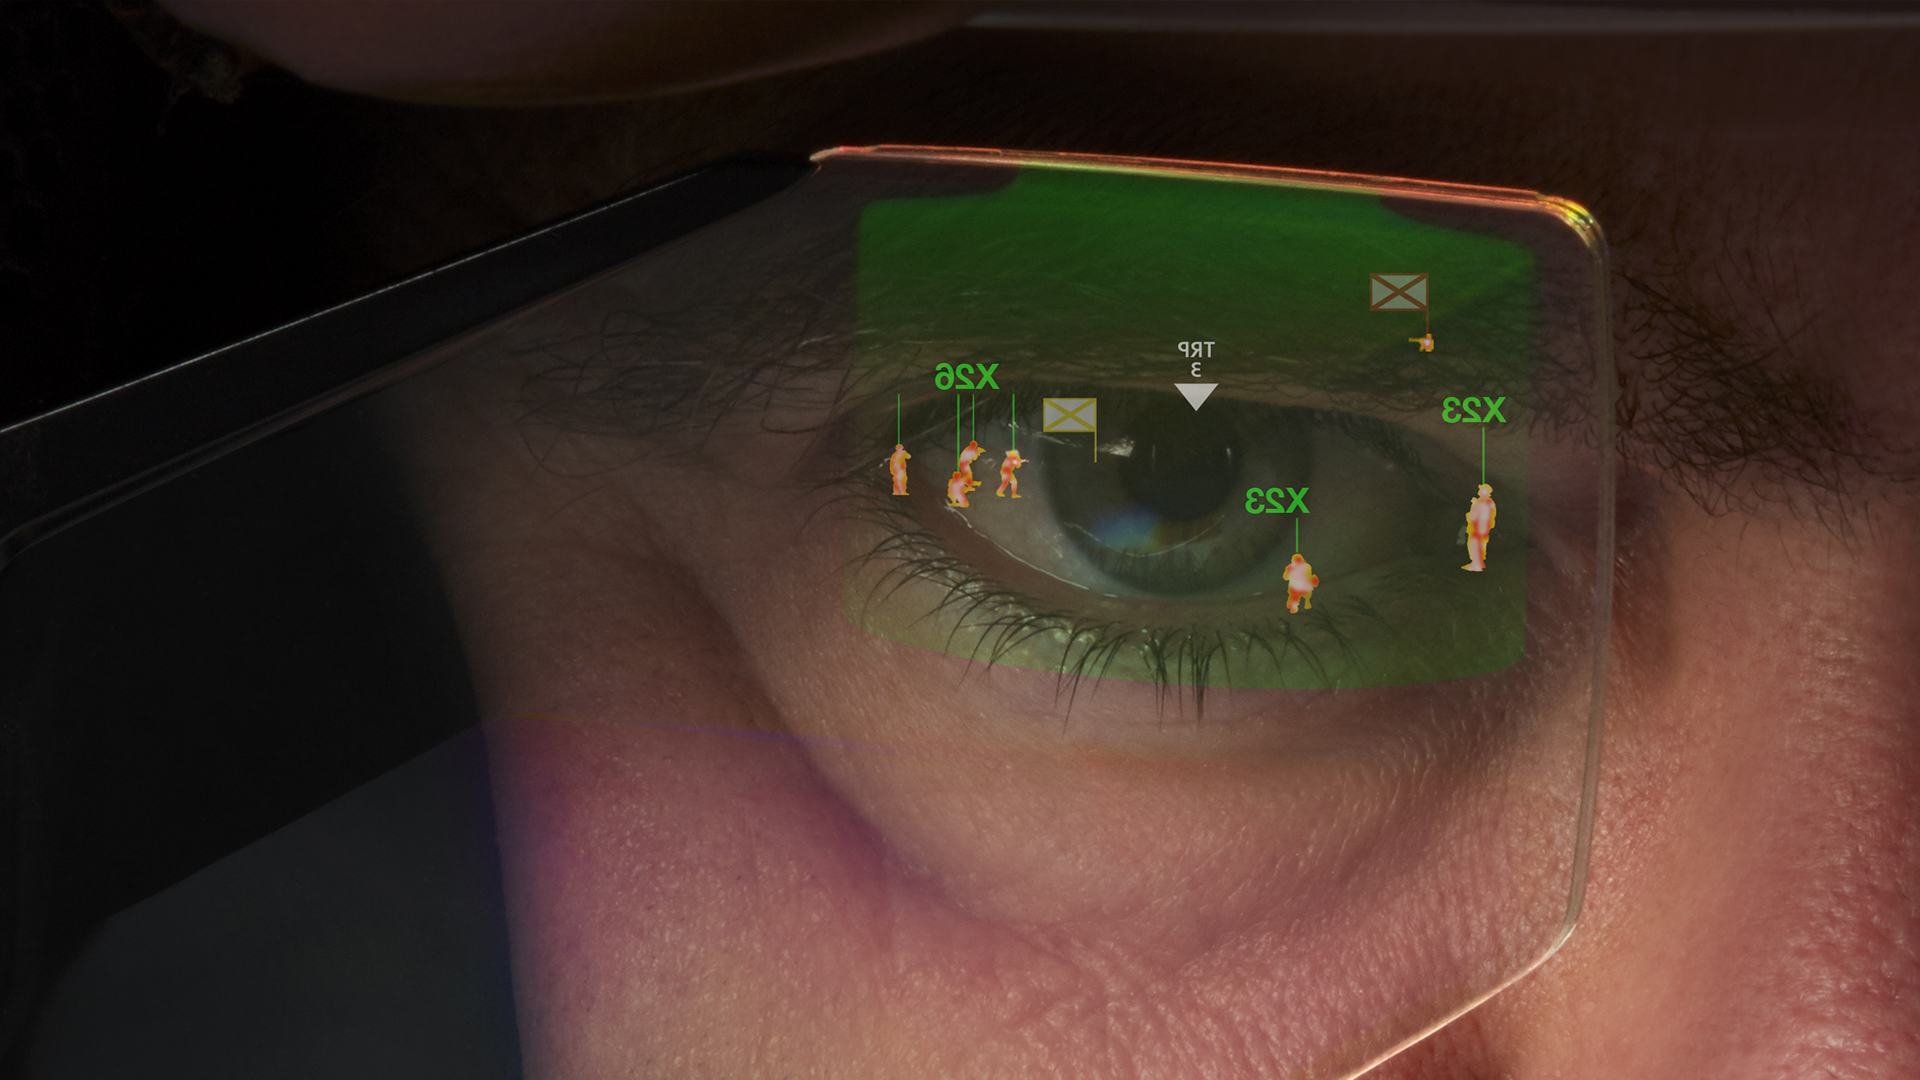 Close up of a man's eye wearing the Enhanced Reality Vision system